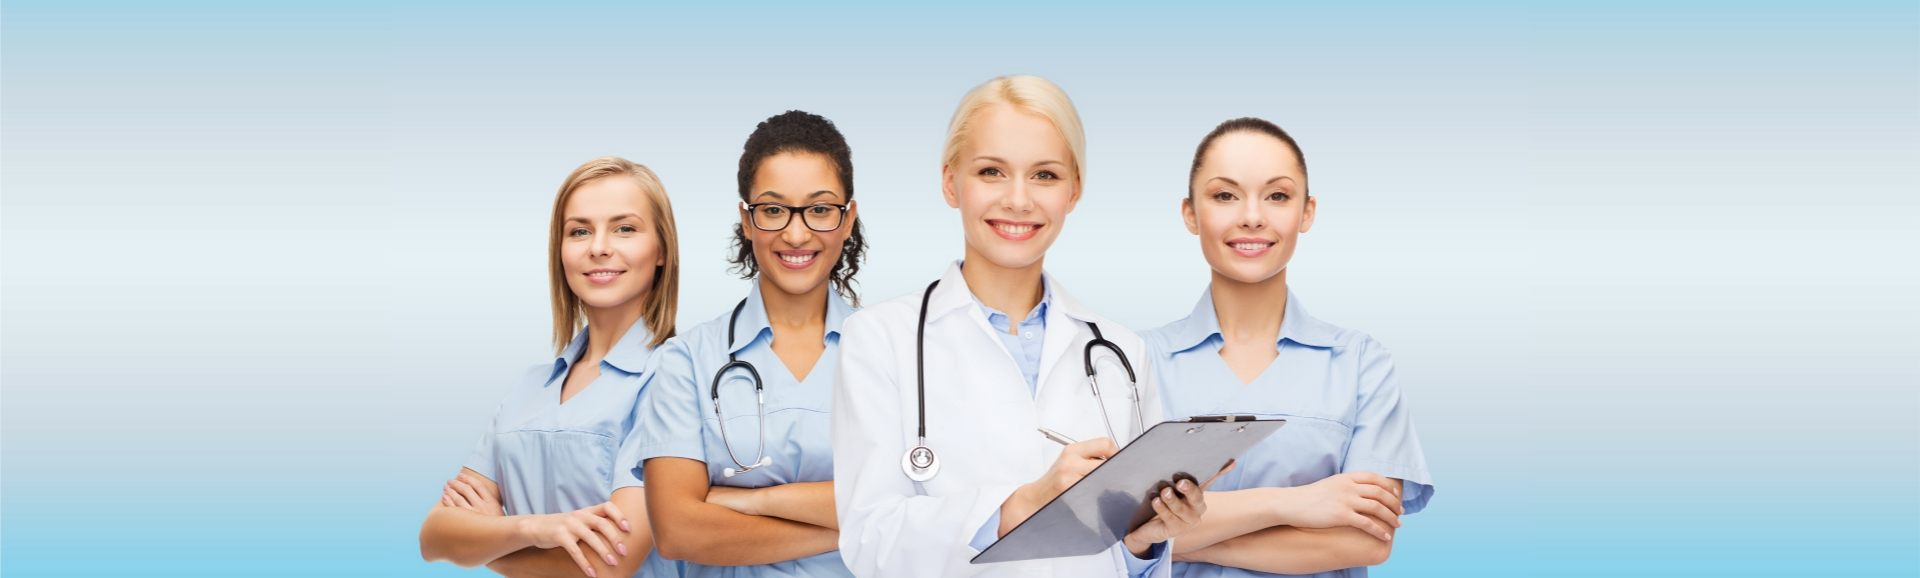 nurses 24 7 nurse staffing per diem contract and travel staffing the most trusted in nurse staffing